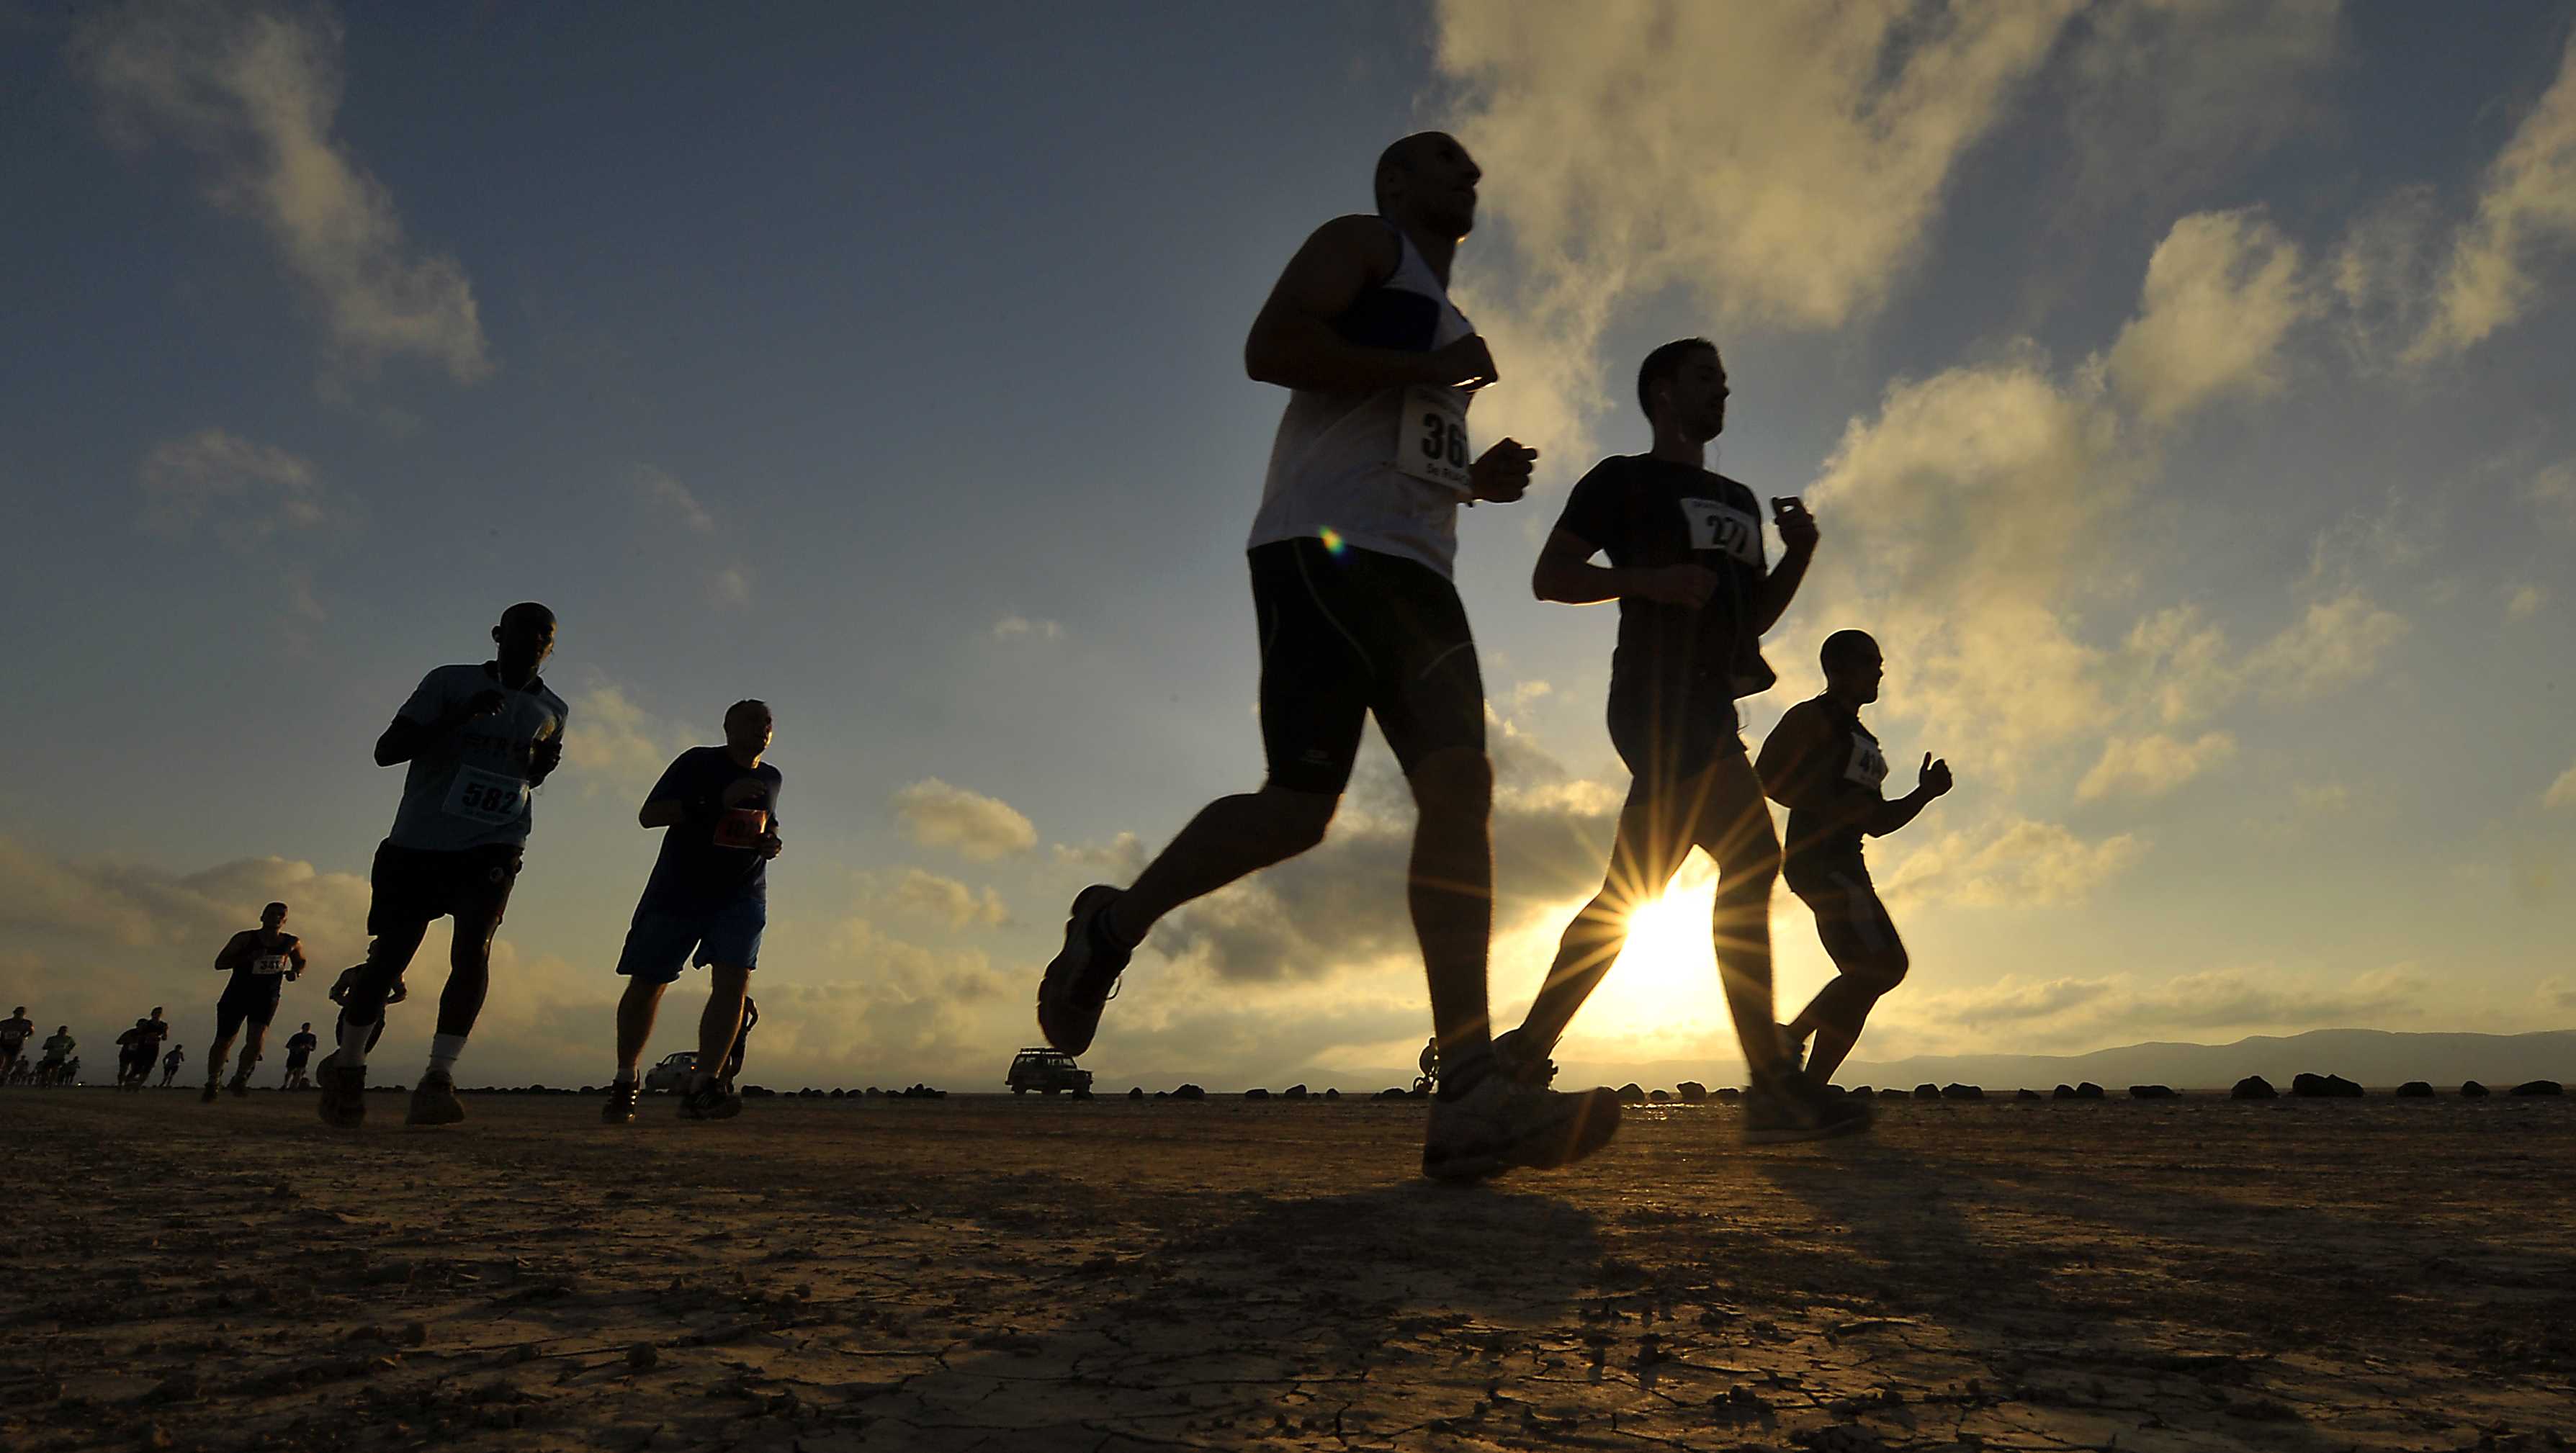 Runners make their way across the Grand Bara Desert during the Annual Grand Bara 15K race Dec. 17, 2015, in Djibouti. More than 1,500 runners from different countries participated in the desert race. (U.S. Air Force photo by Tech. Sgt. Dan DeCook)